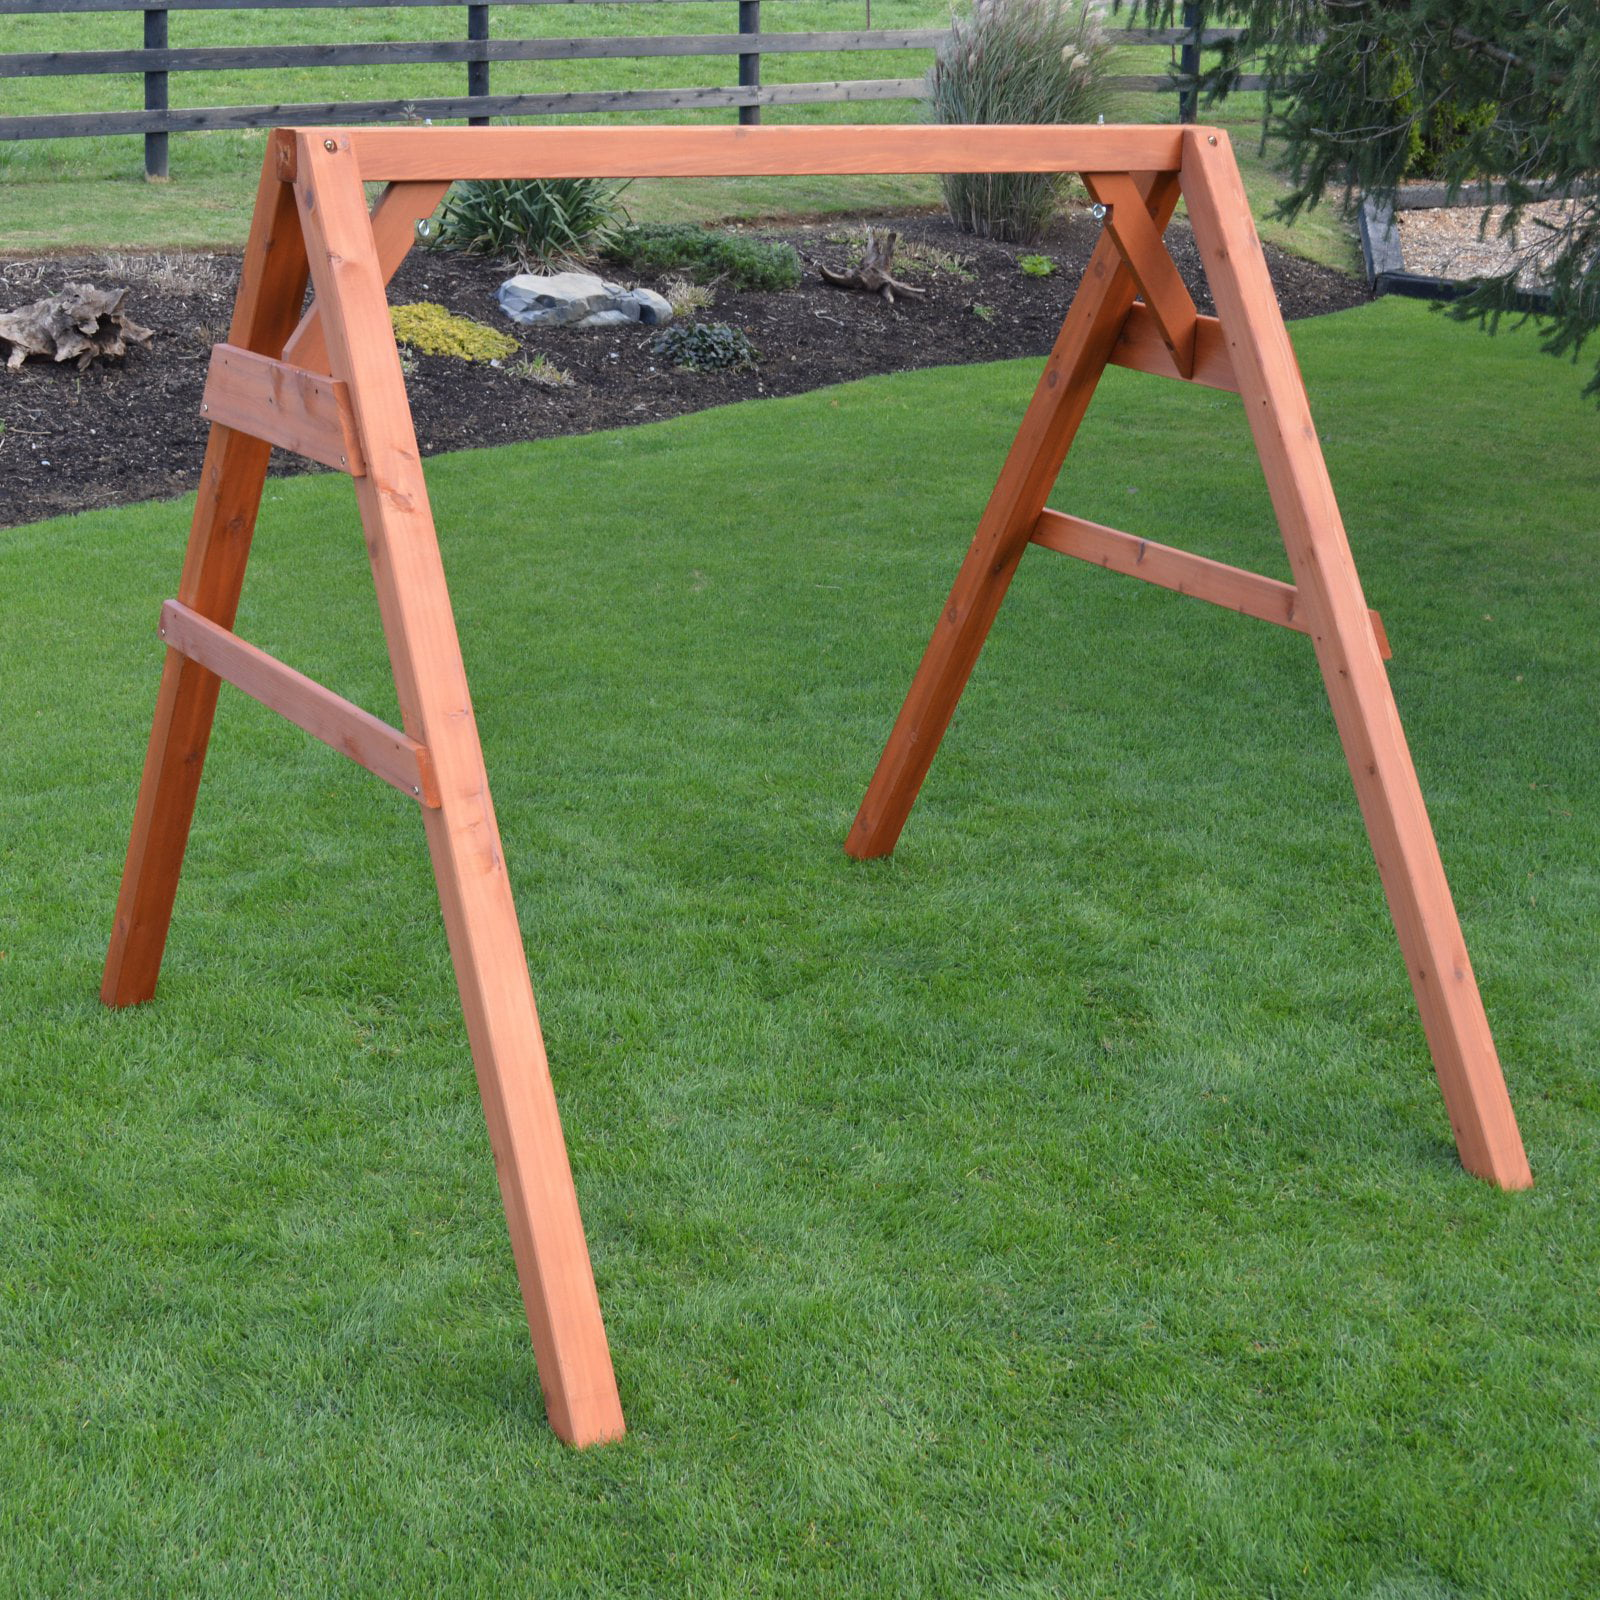 A Amp L Furniture A Frame Wood Swing Stand For Swing Or Swingbed Walmart Com Walmart Com